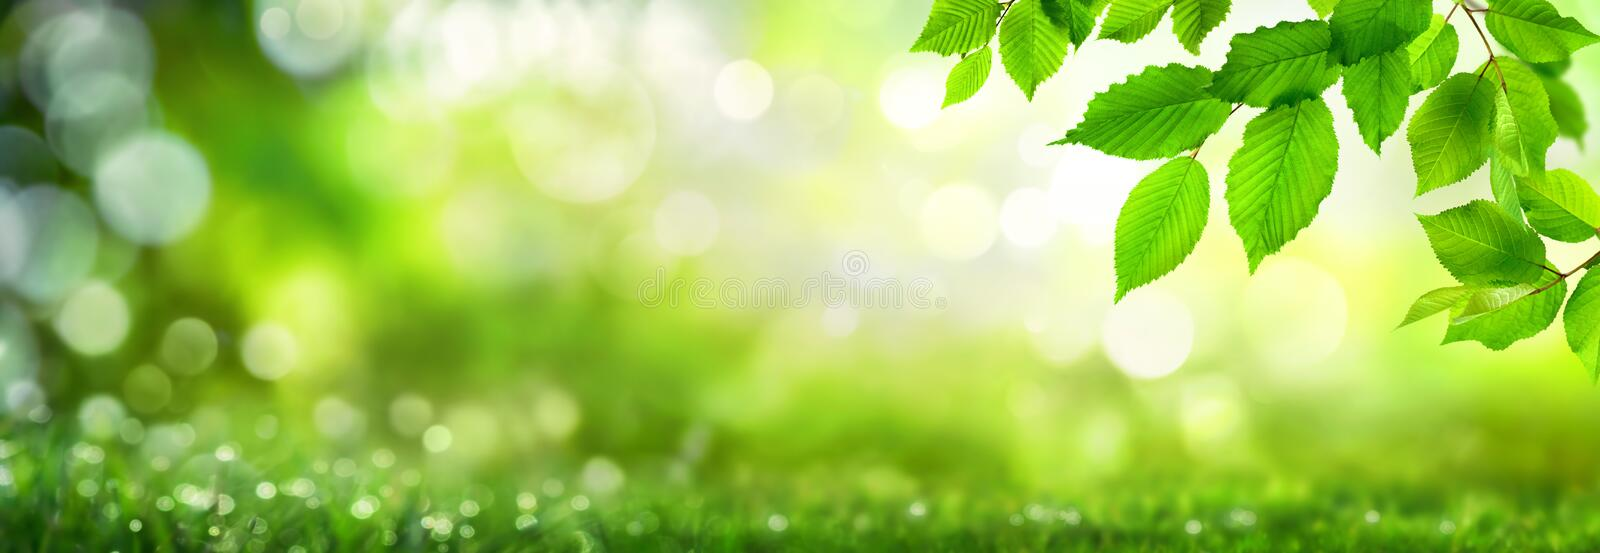 Download Green Leaves On Bokeh Nature Background Stock Photo - Image of focus, greeting: 88362112